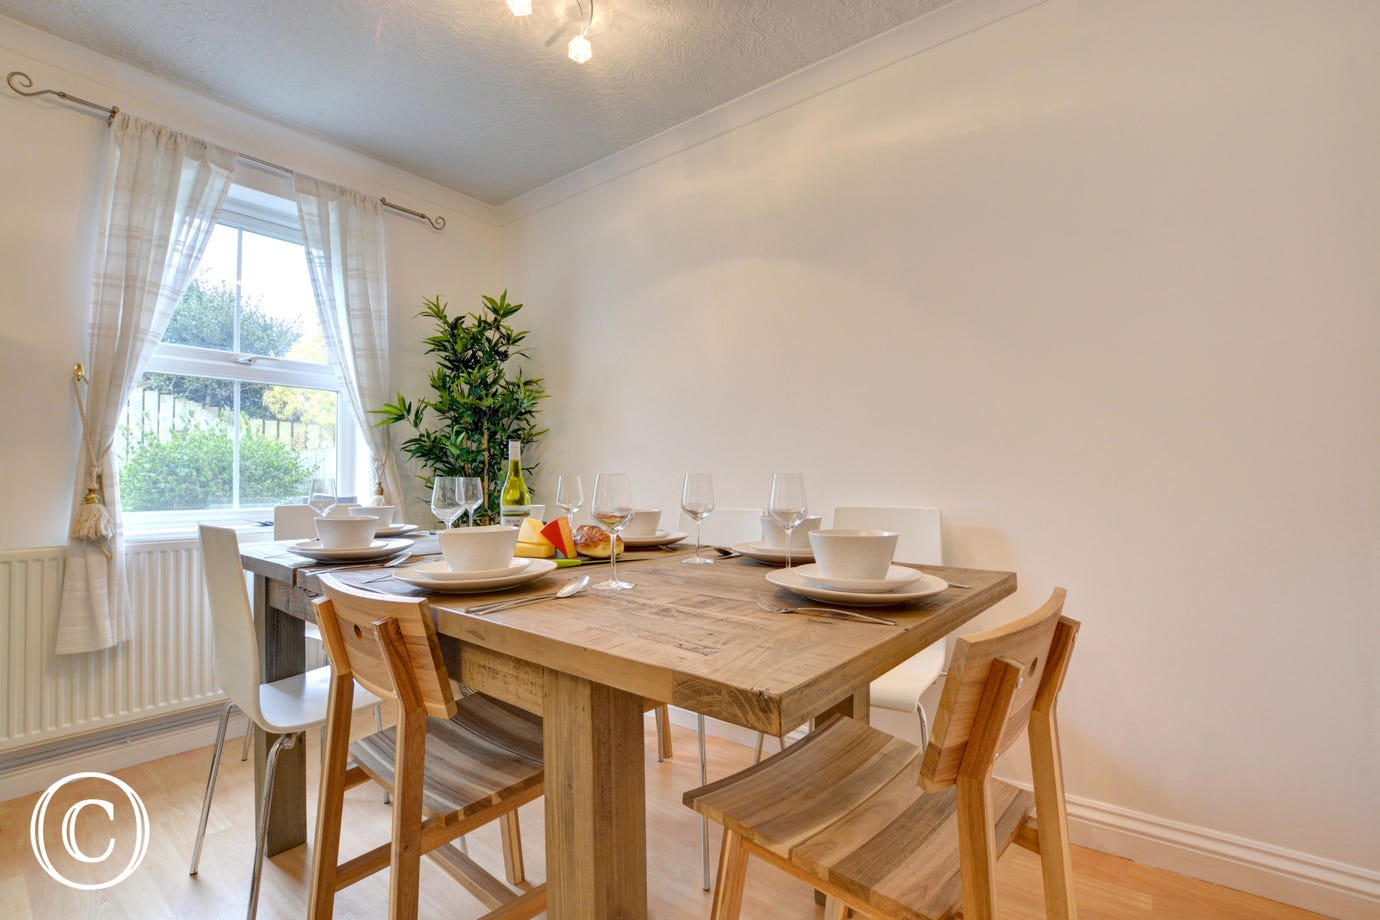 Dining table and chairs in this self catering property